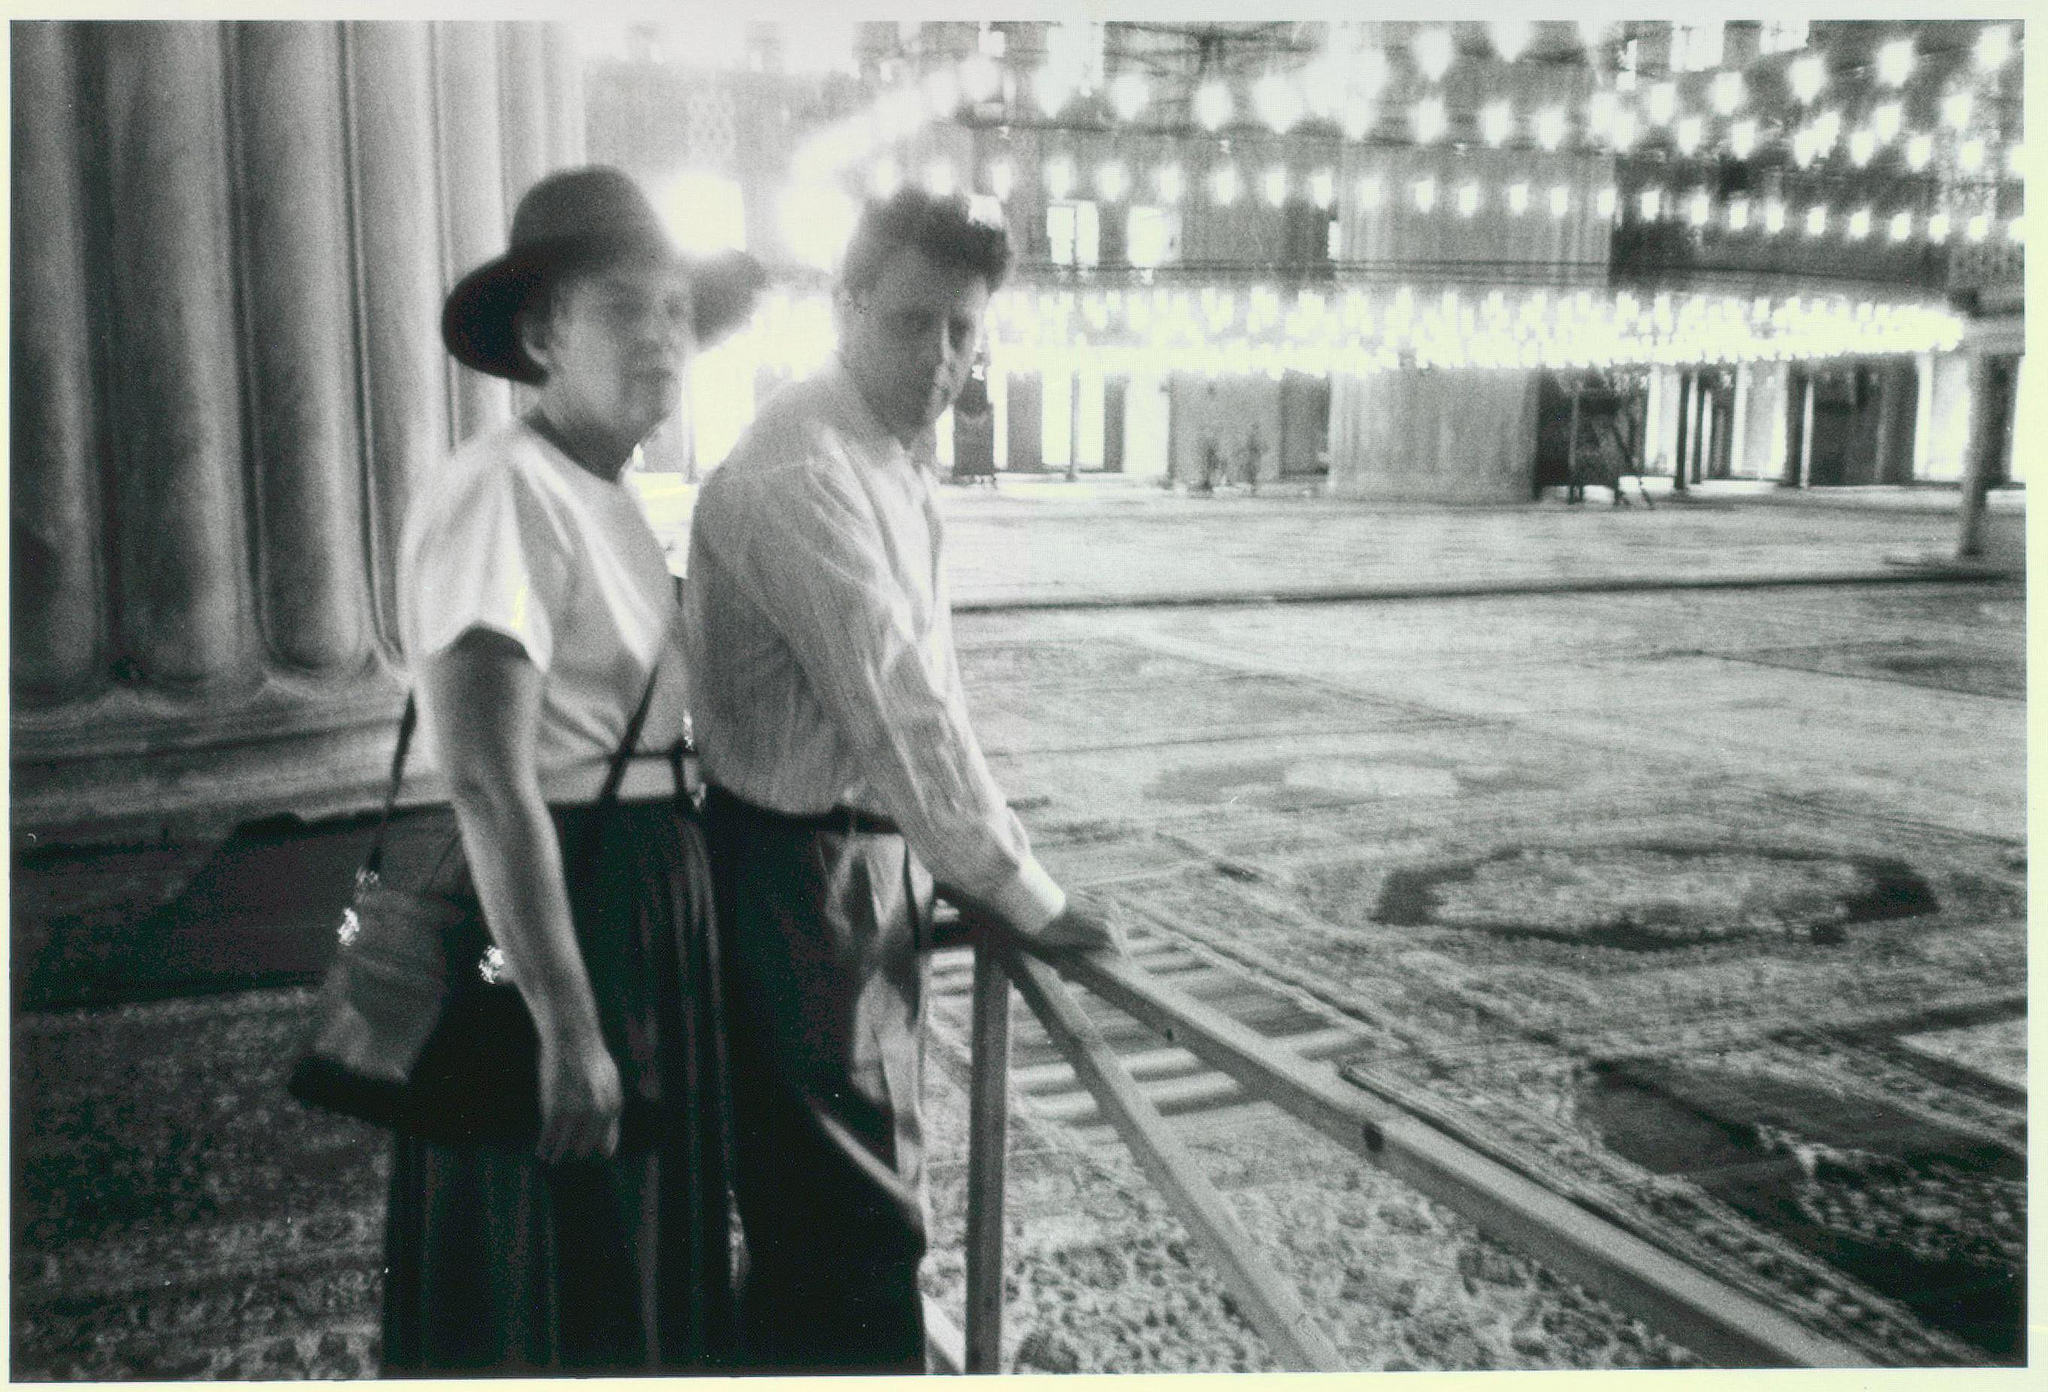 Turkey Hagia Sophia, interior shot, Philip Glass and sister, 1990